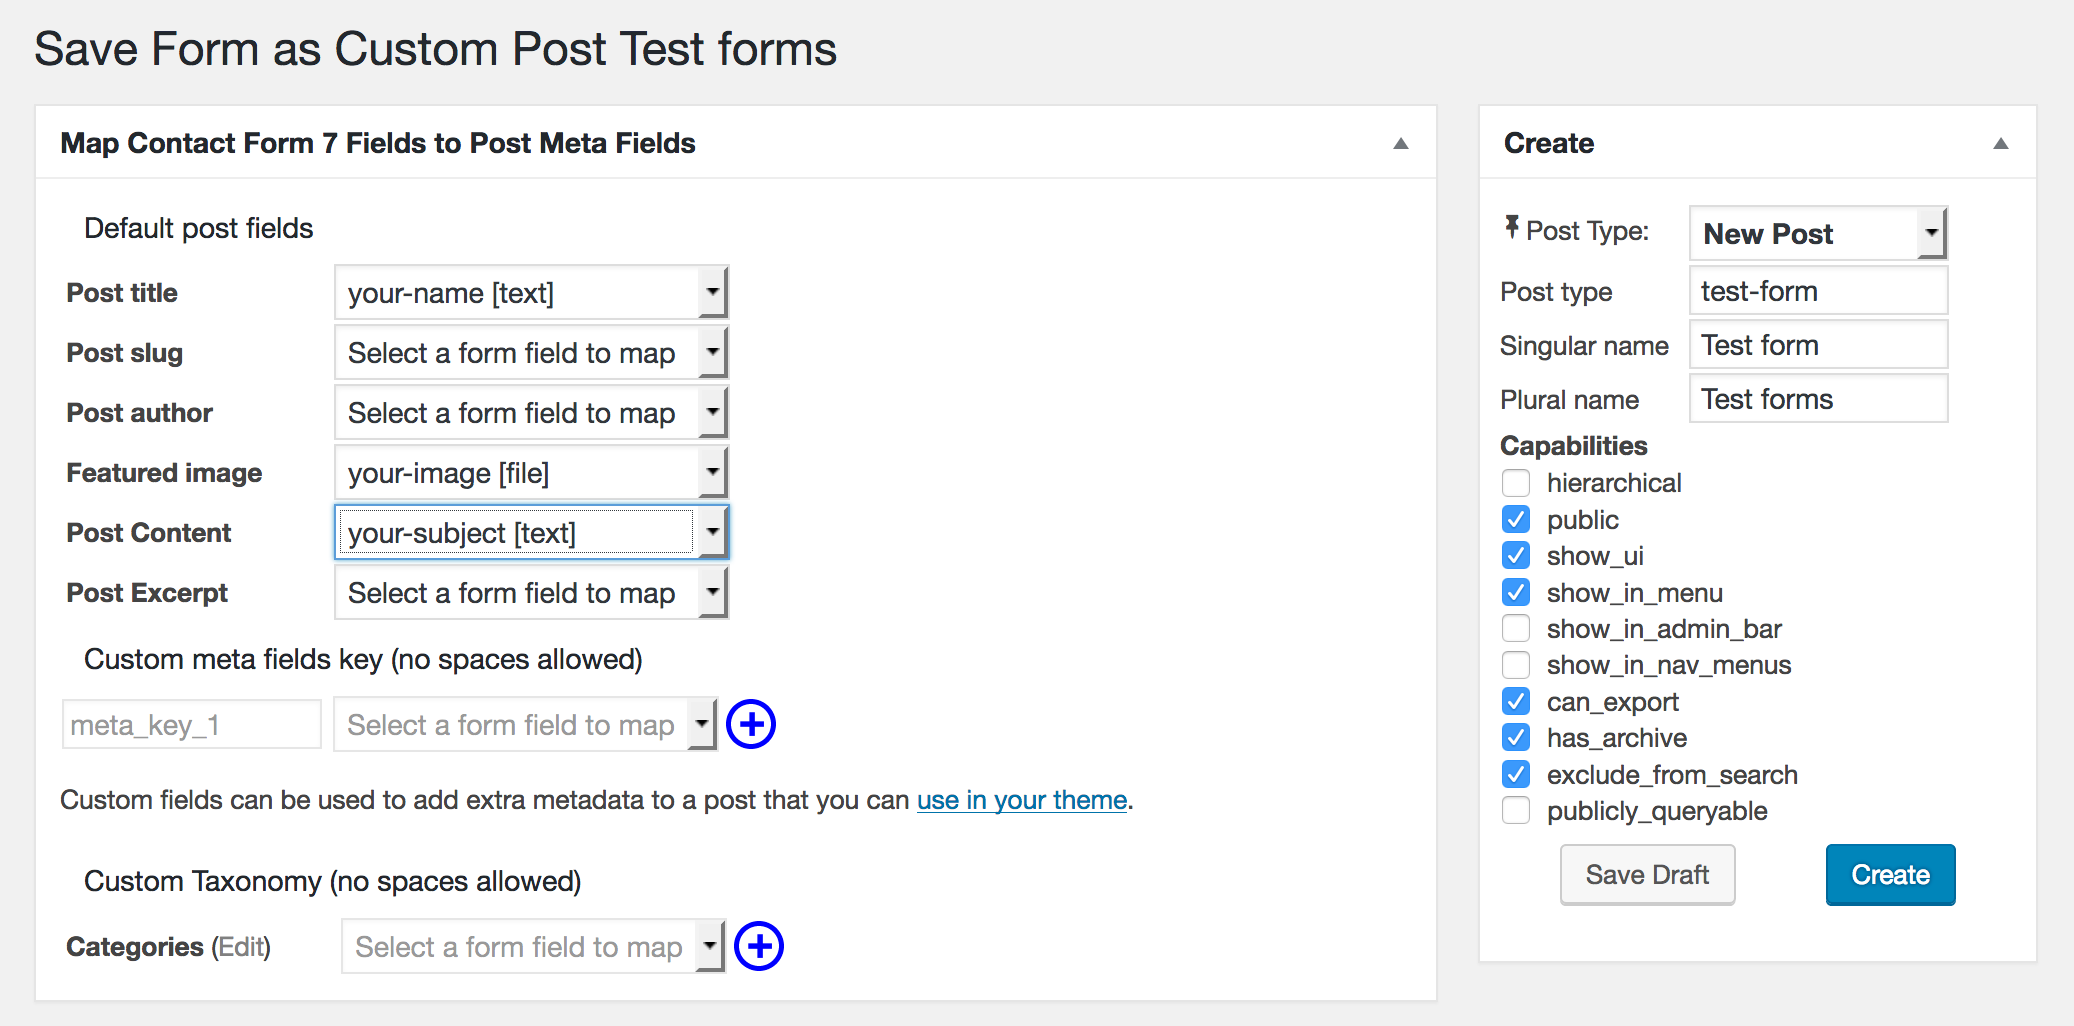 If your form contains a file upload field, the featured-image option will appear on the mapping screen.  Select your file field to map the uploaded image to the post thumbnail.